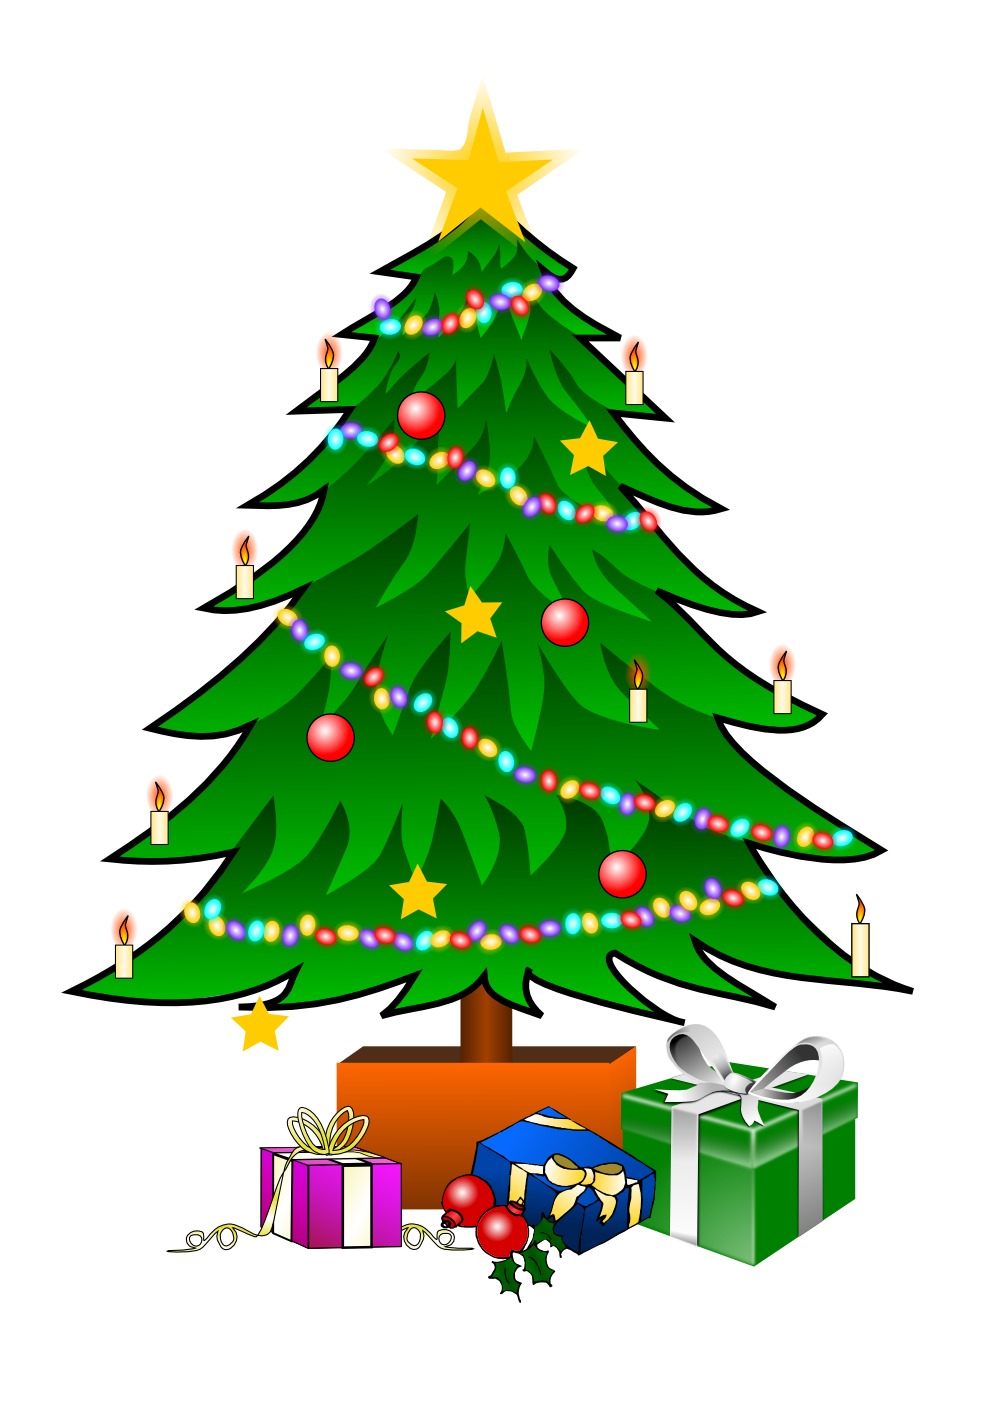 Puzzle clipart christmas. This nice tree with